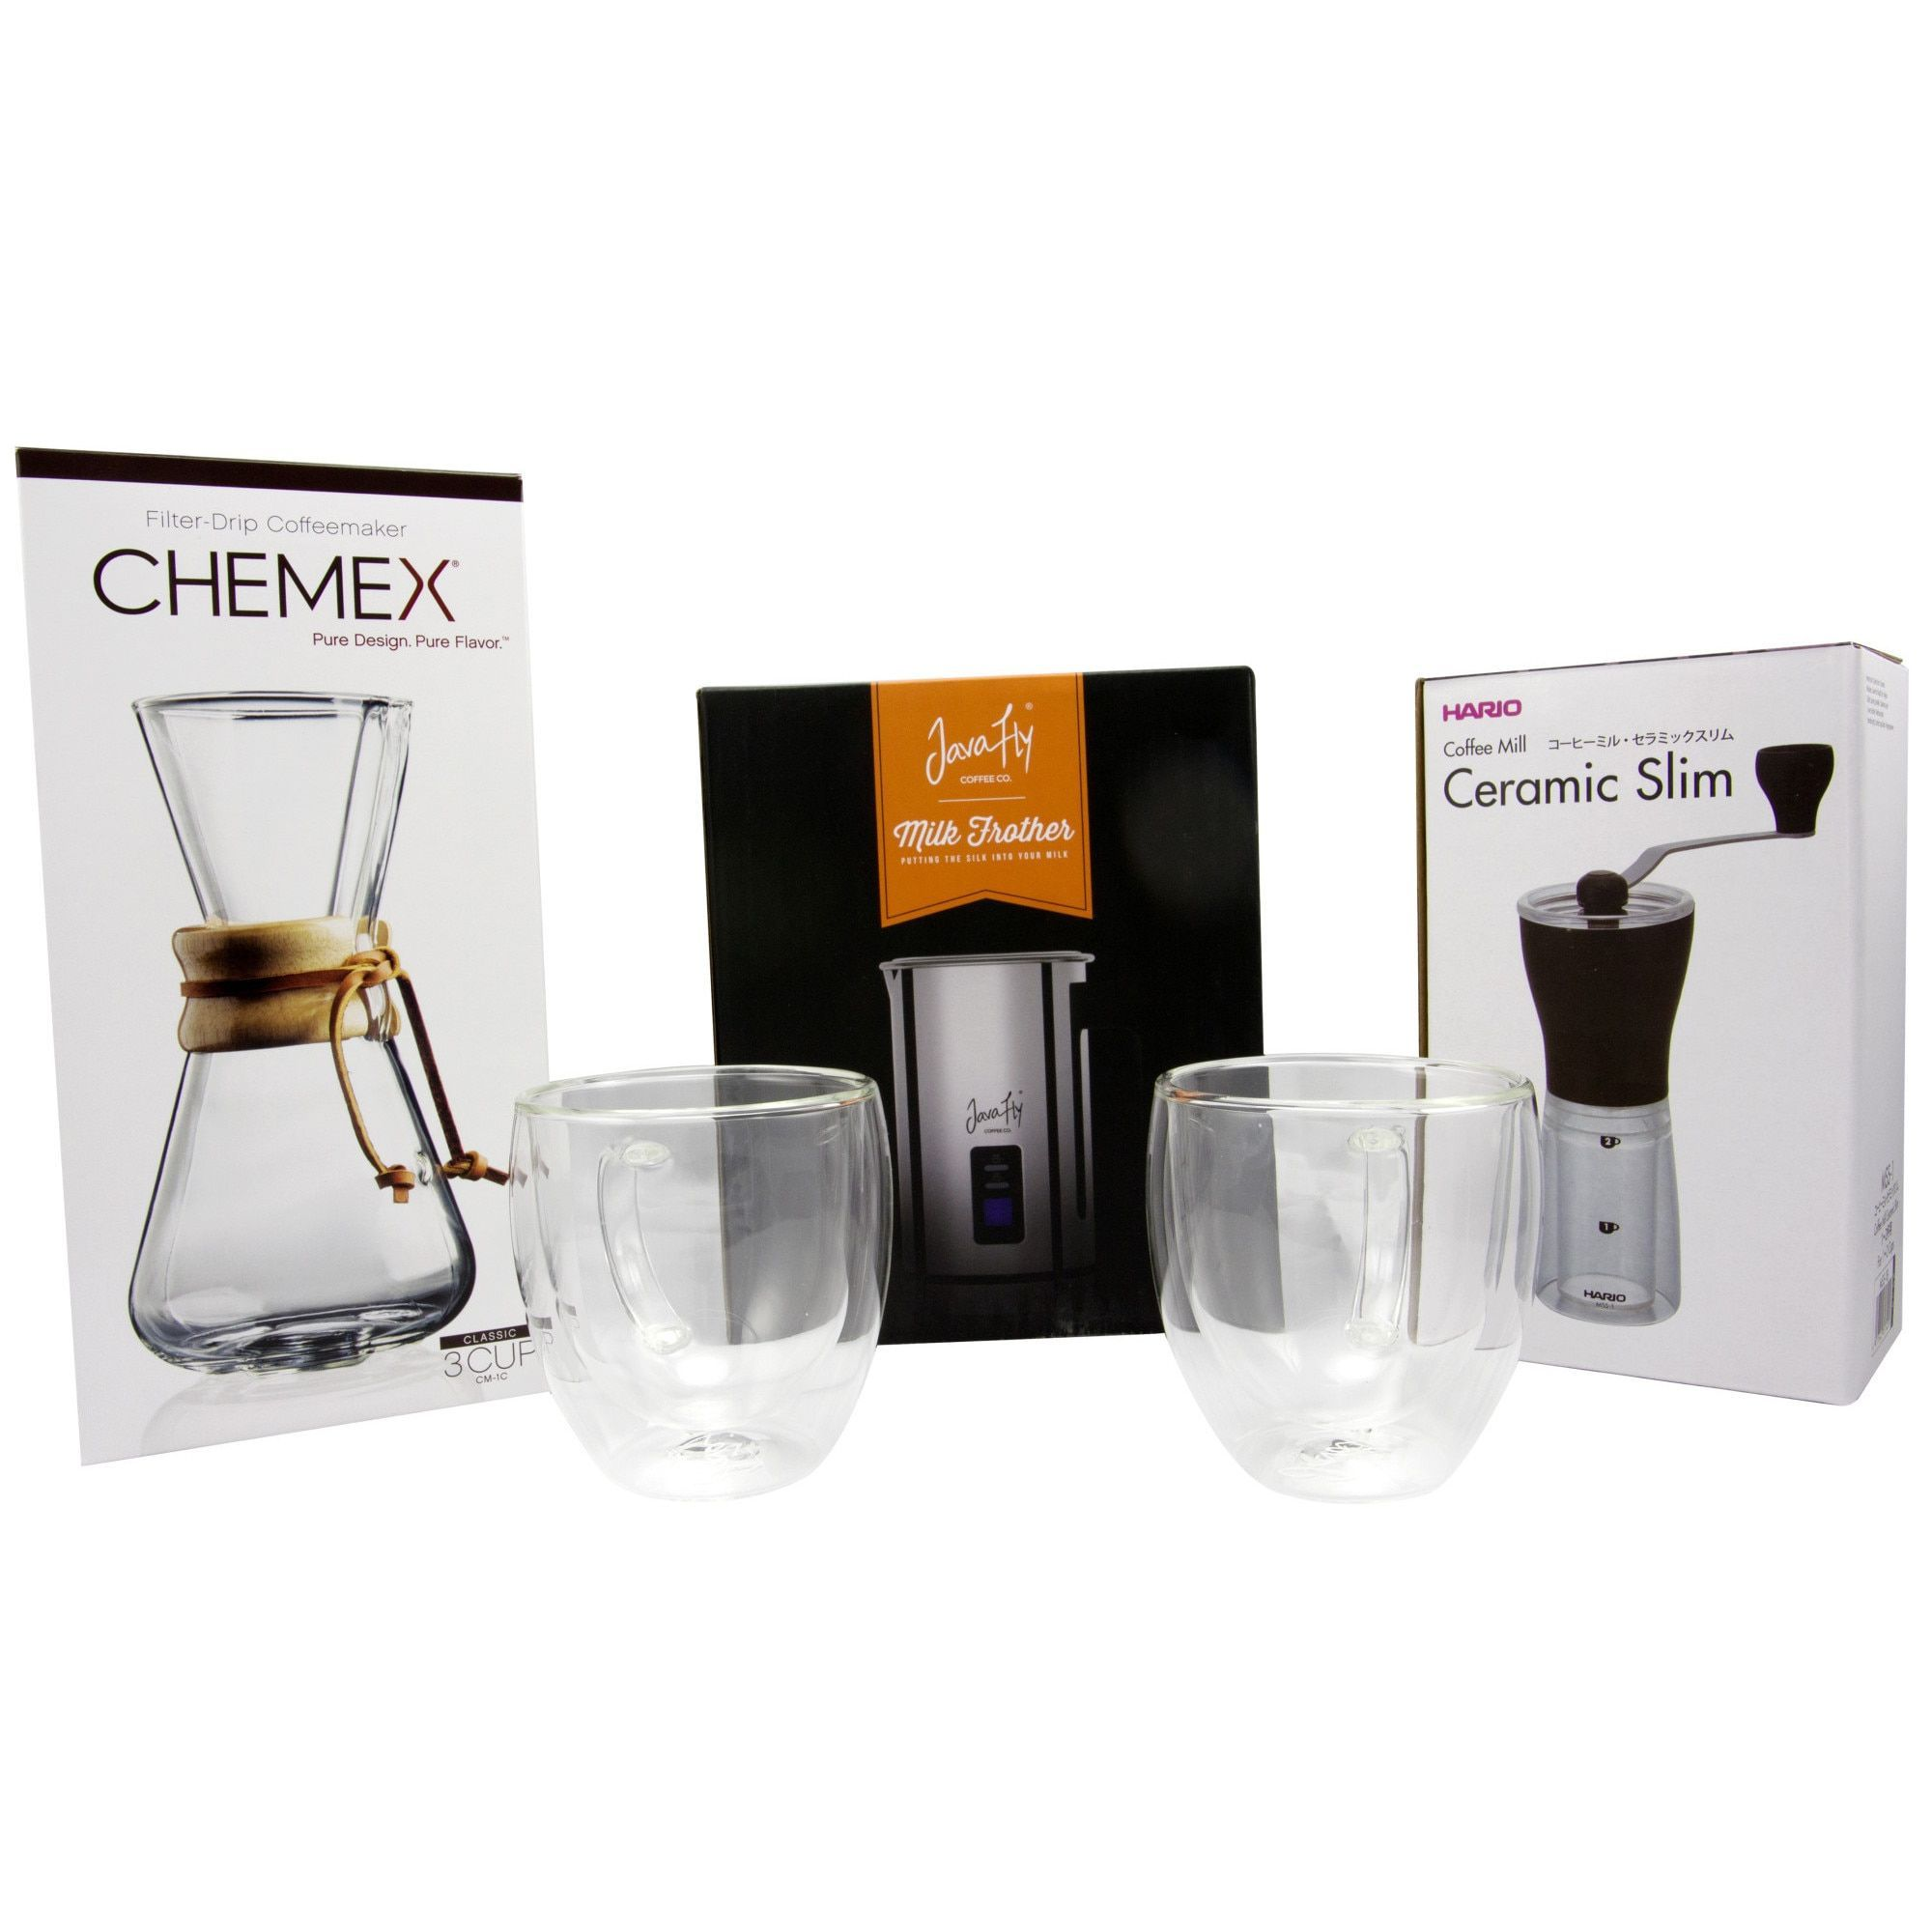 Specialist Coffee Maker Kit With Chemex 3cup Coffeemaker